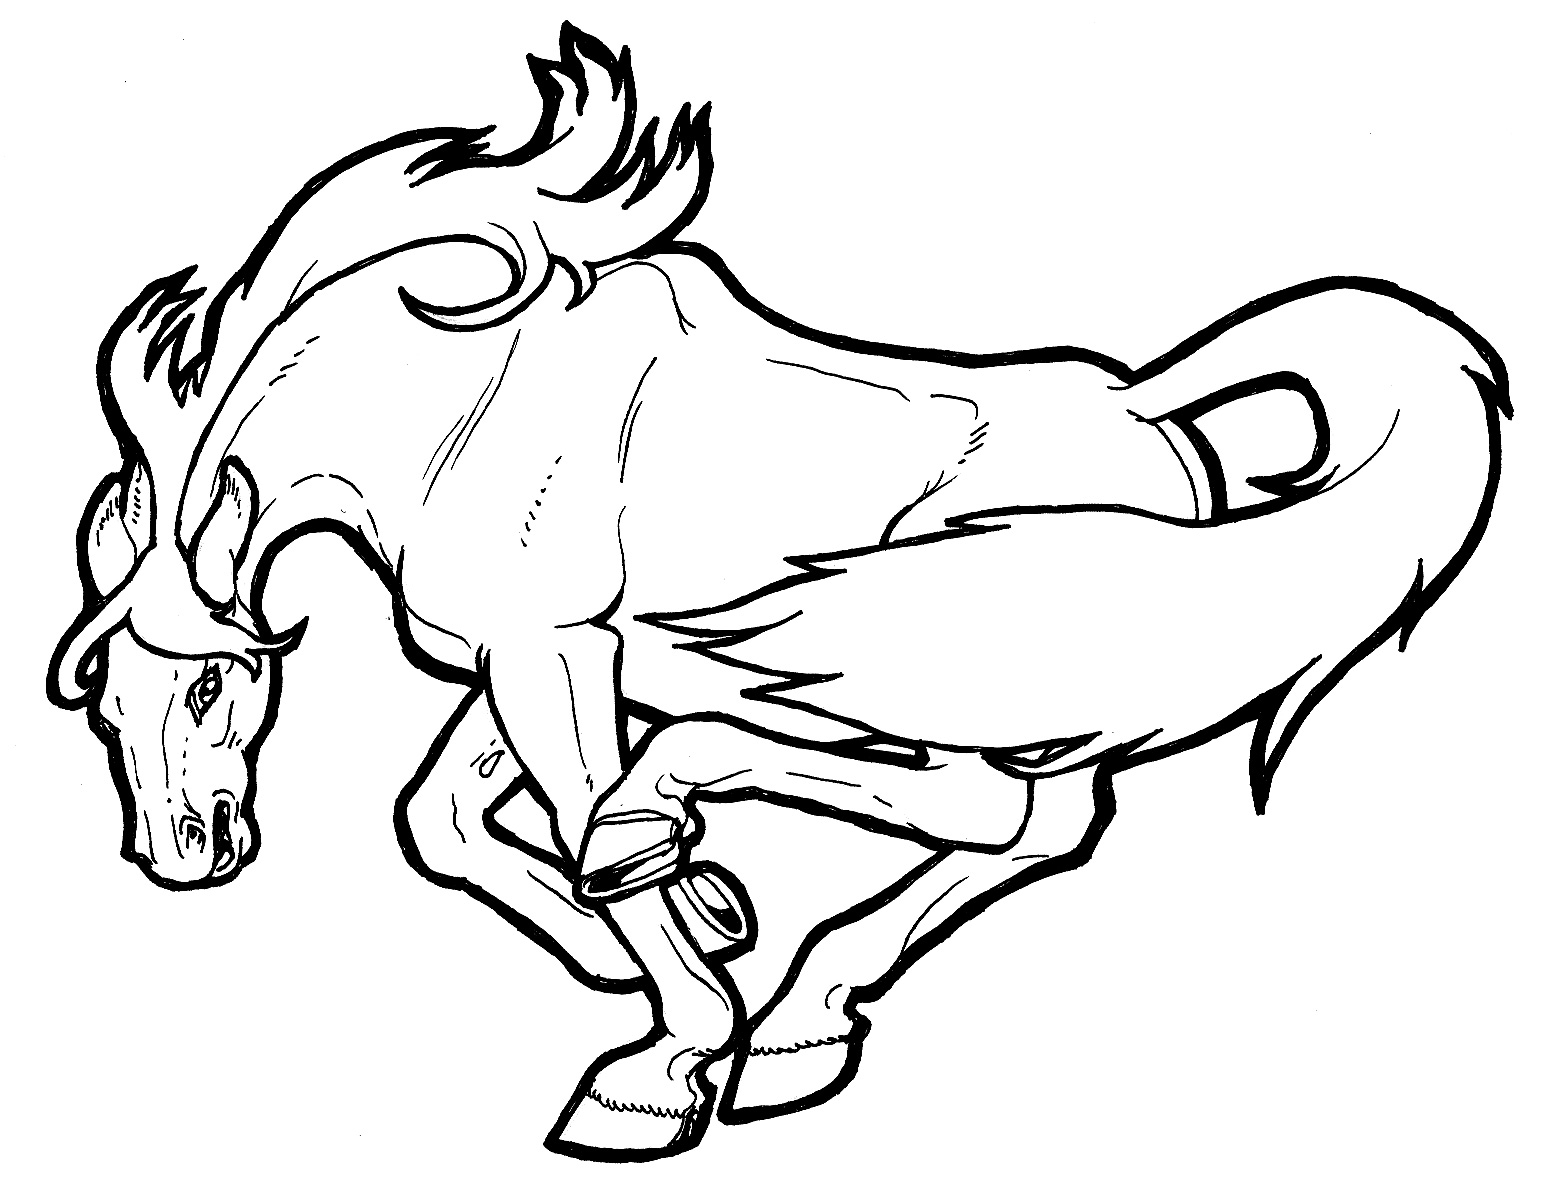 coloring pages of horses to print coloring pages of horses printable free coloring sheets pages horses to coloring print of